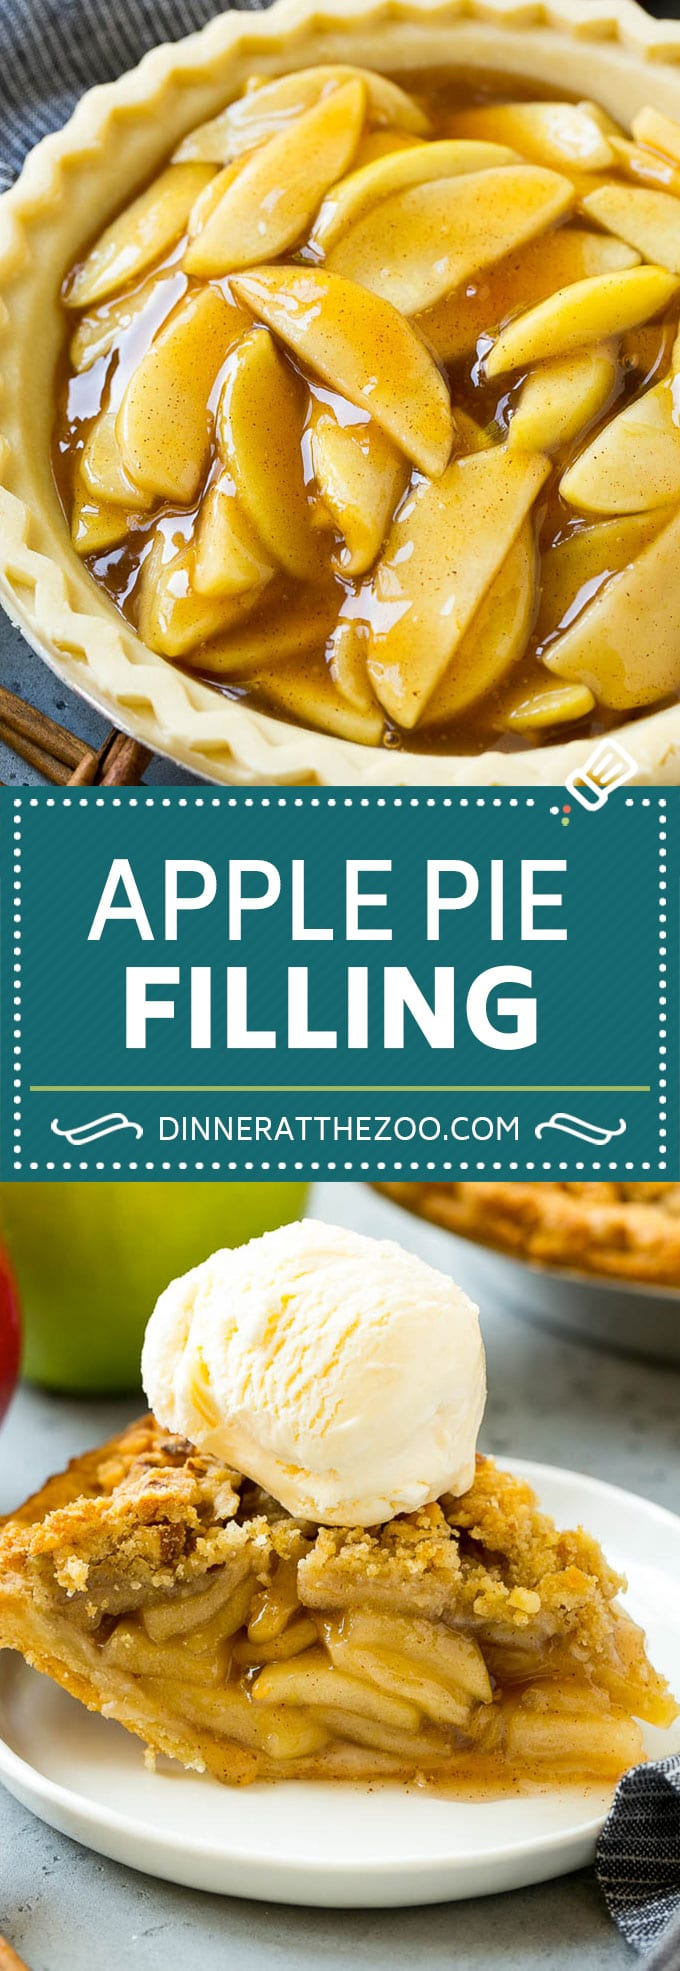 Apple Pie Filling Recipe | Apple Pie Recipe | Apple Recipe #apple #fall #baking #pie #dinneratthezoo